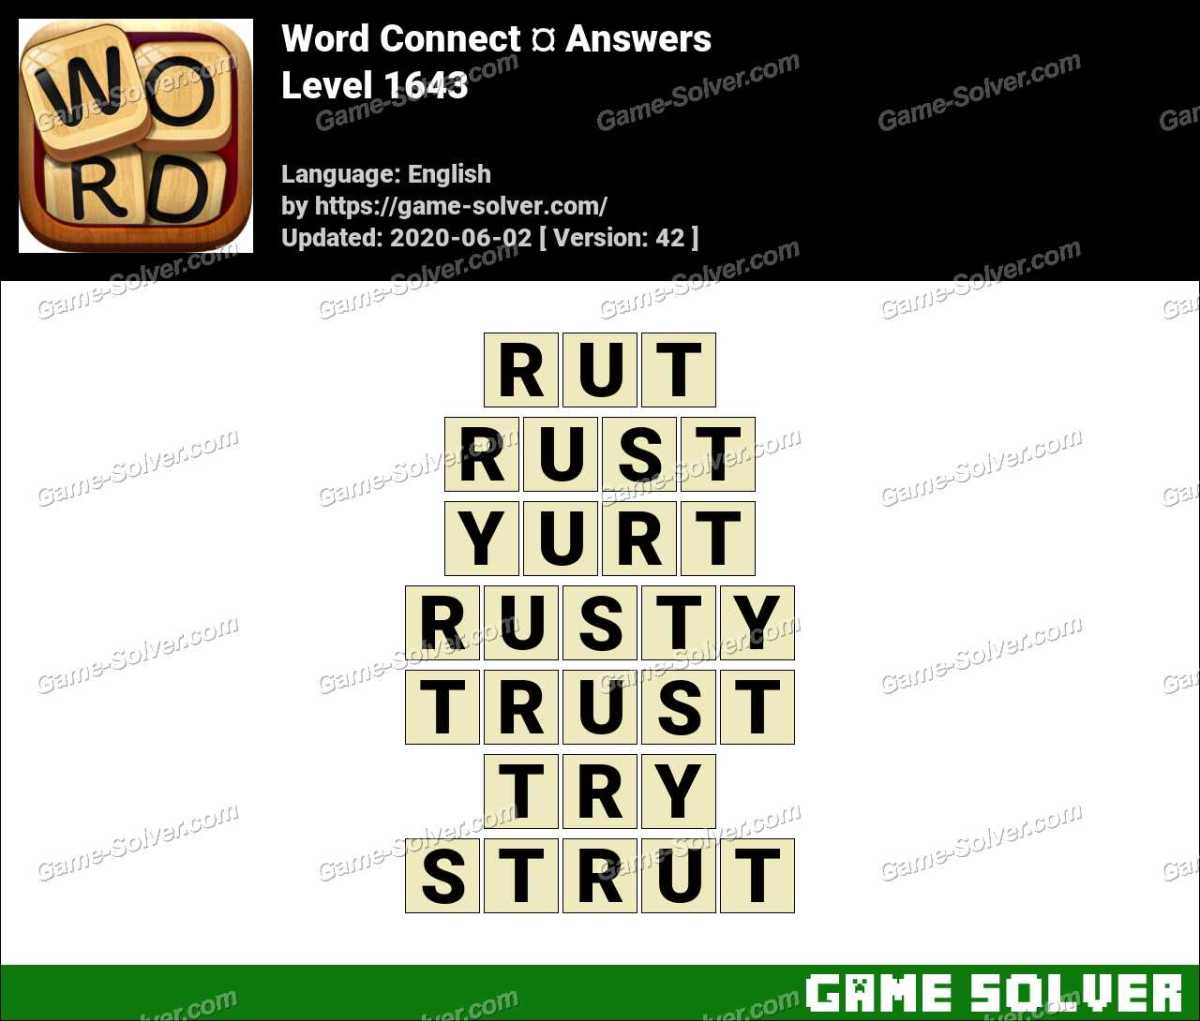 Word Connect Level 1643 Answers